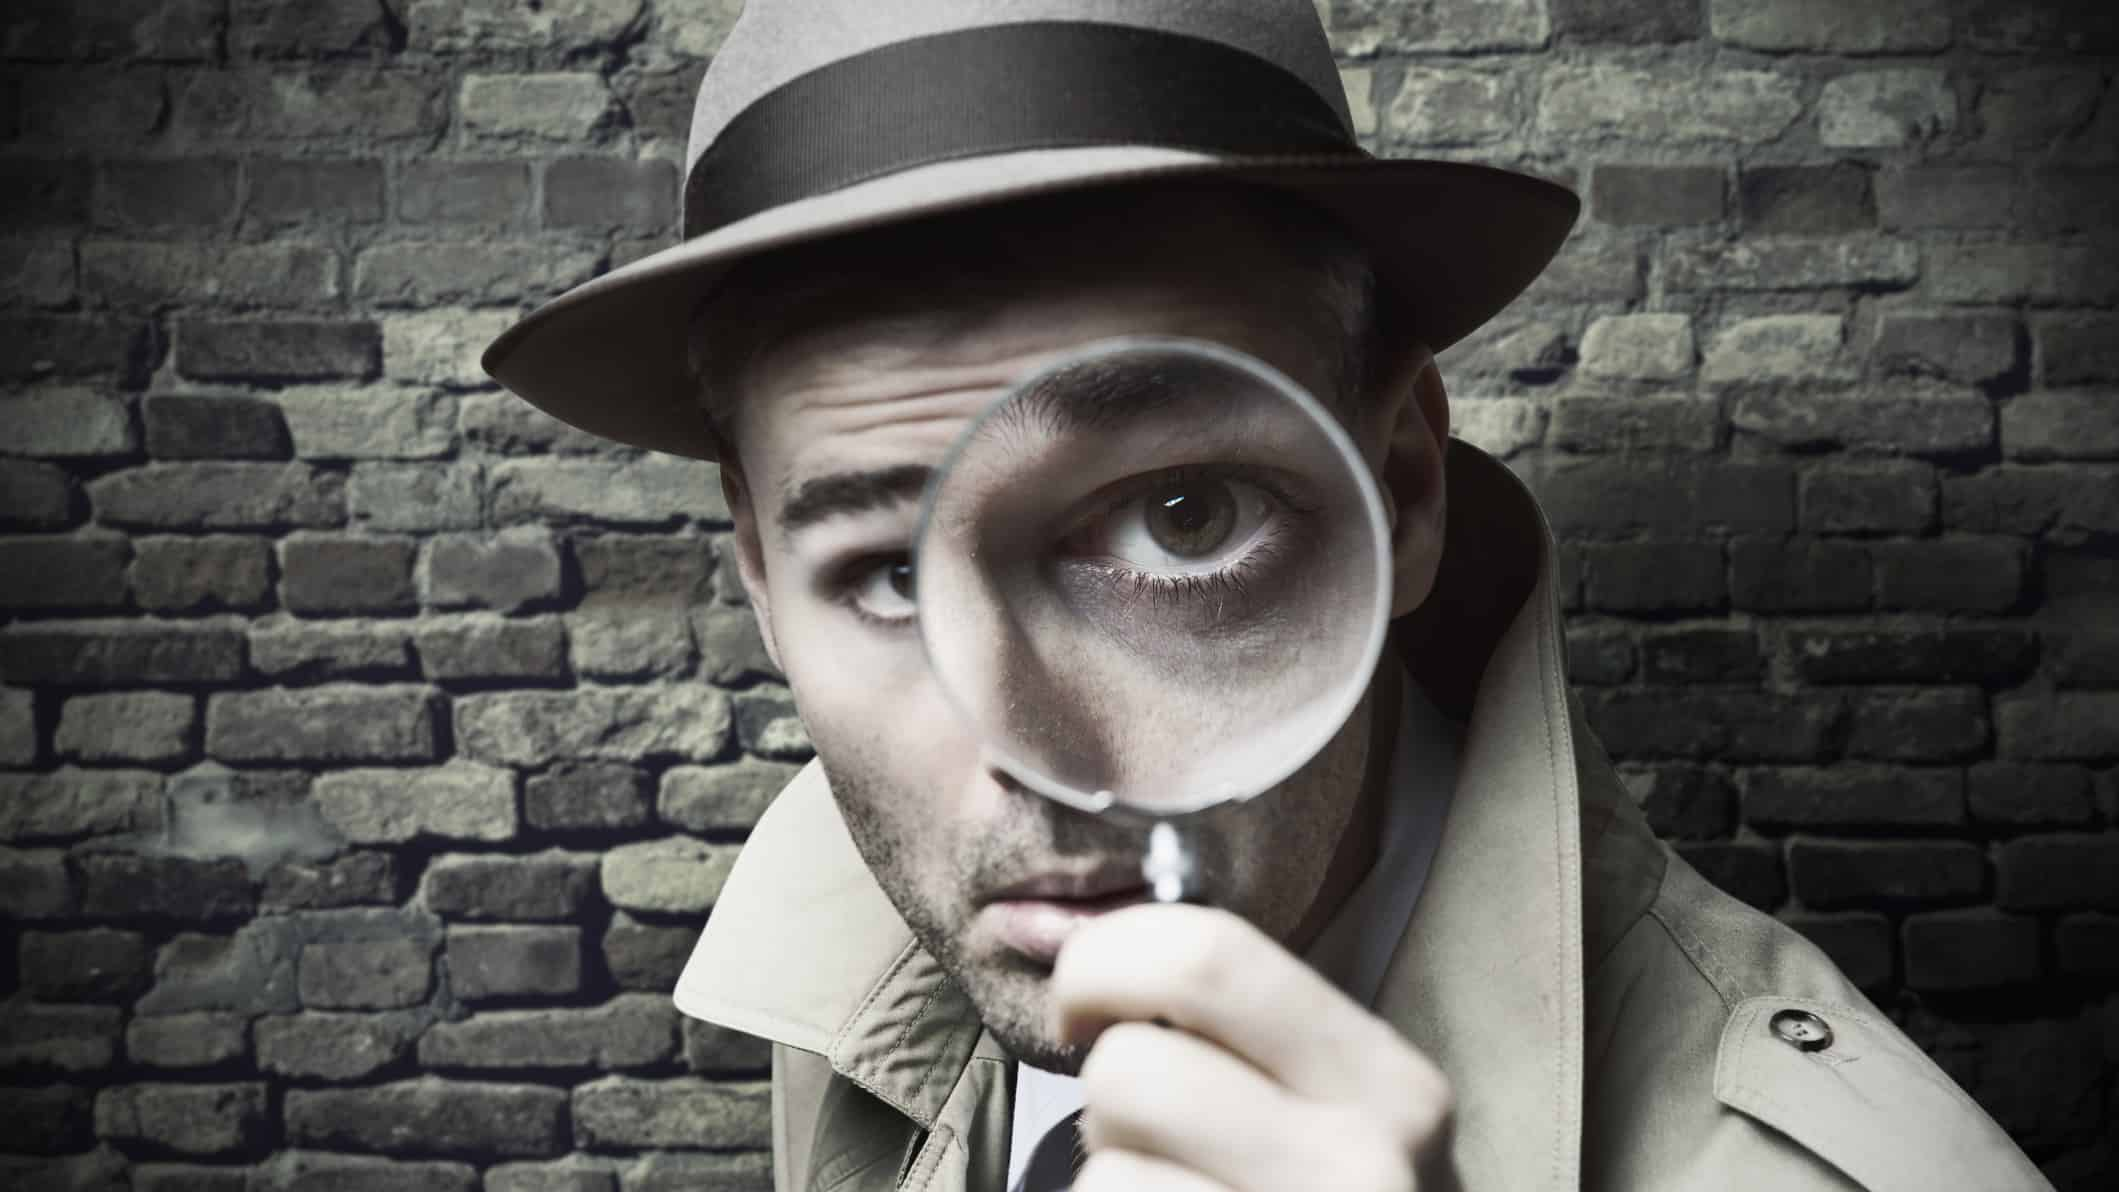 man in old fashioned suit and hat looking through magnifying glass